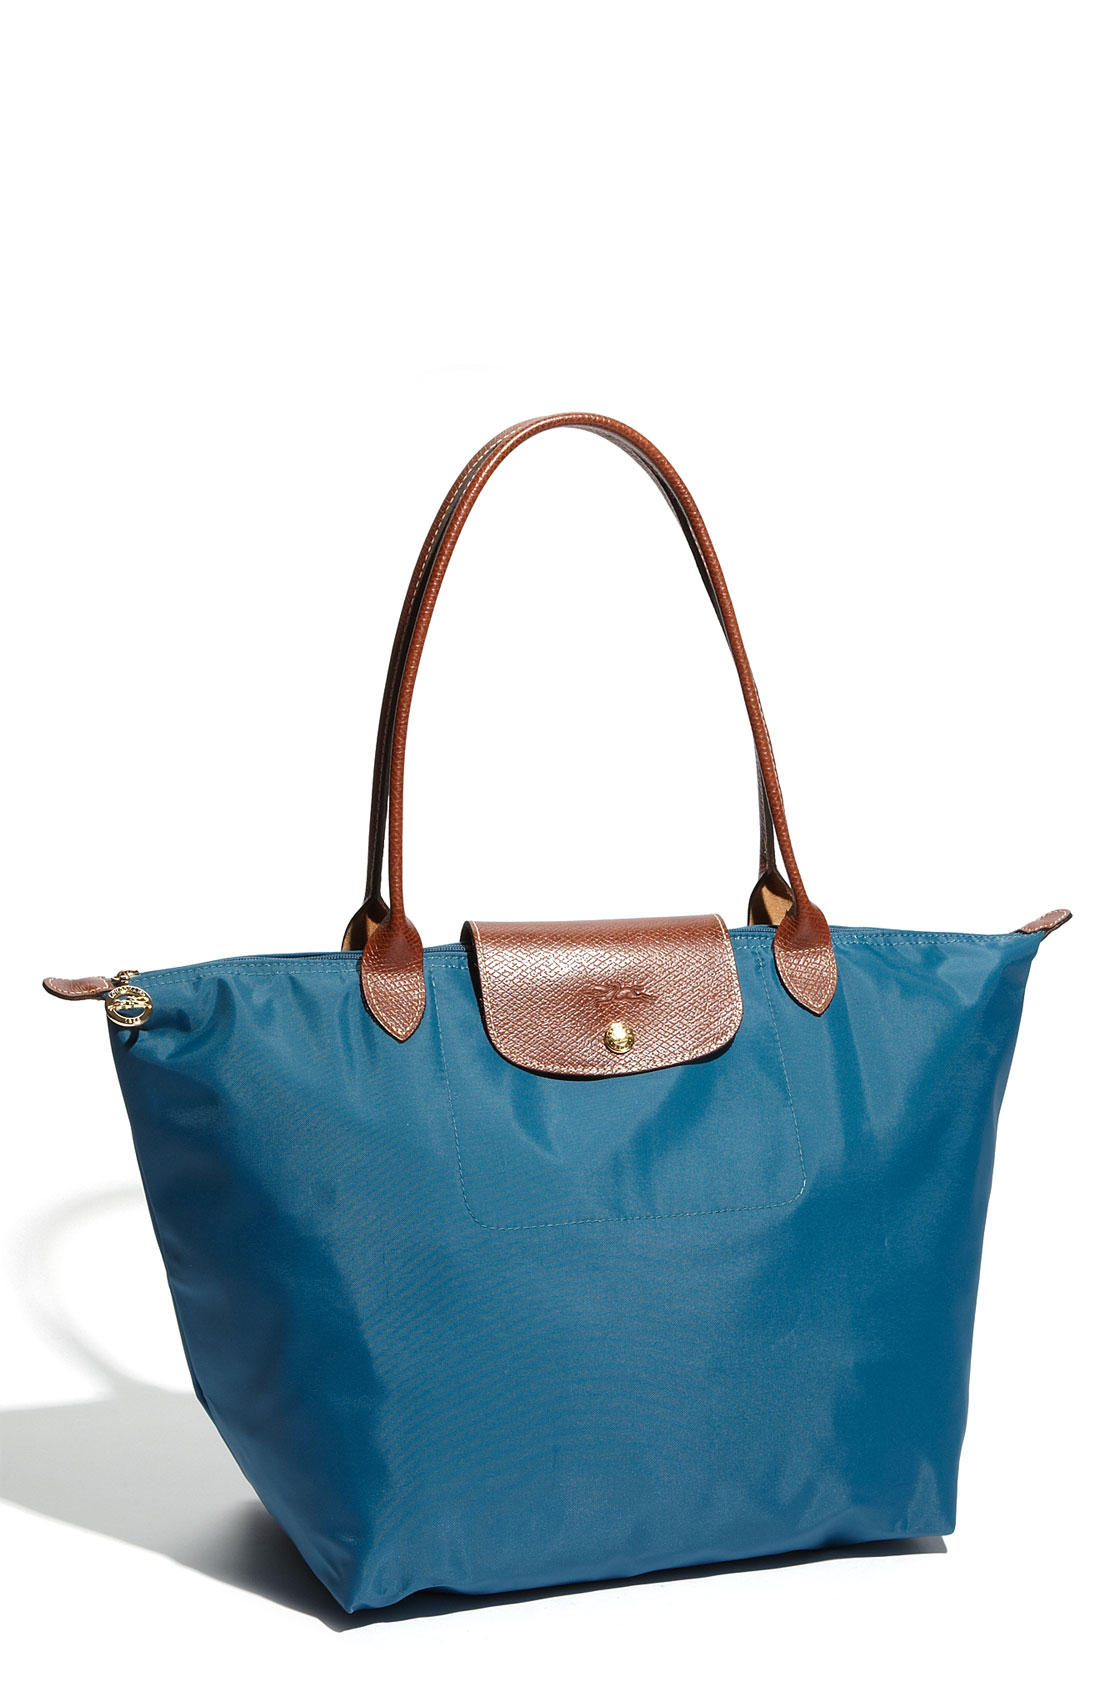 longchamp le pliage large tote in blue cumin lyst. Black Bedroom Furniture Sets. Home Design Ideas